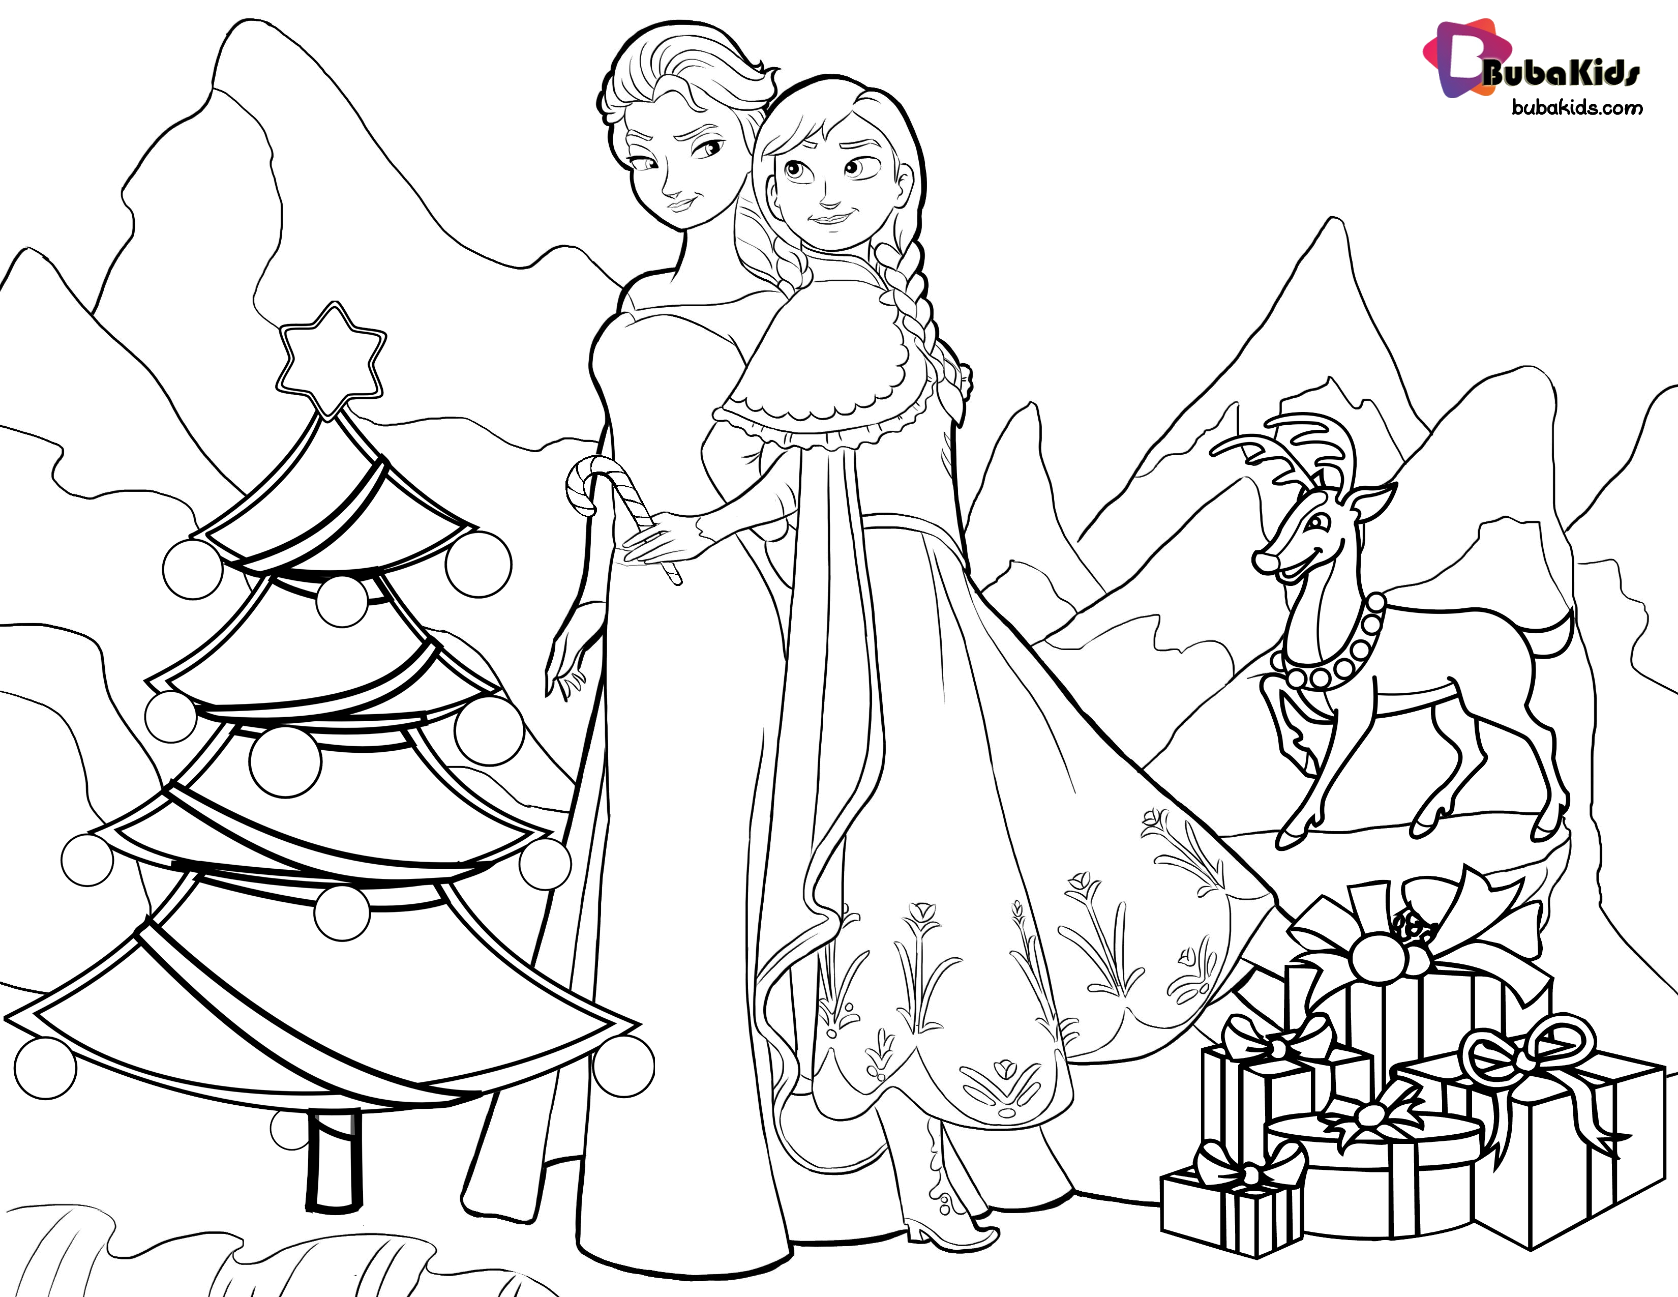 Frozen Queen Elsa And Princess Anna Christmas Coloring Page Free Download And Printabl Princess Coloring Pages Cartoon Coloring Pages Christmas Coloring Pages